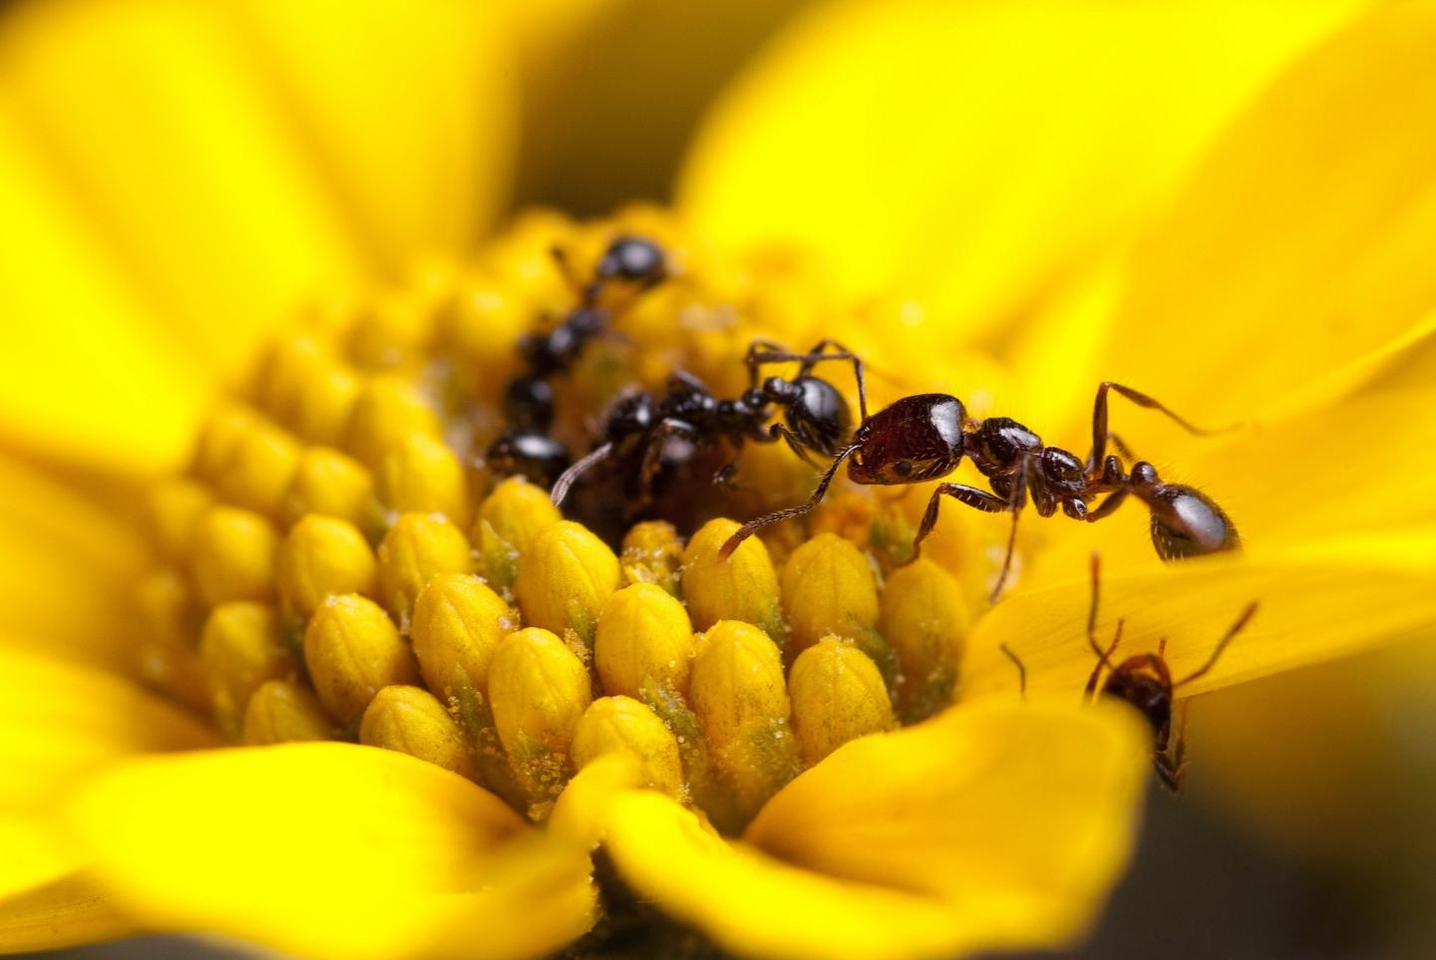 Thedesert fire ant,Solenopsis xyloni, was found toproduce some of the strongest antimicrobials measured in social insects